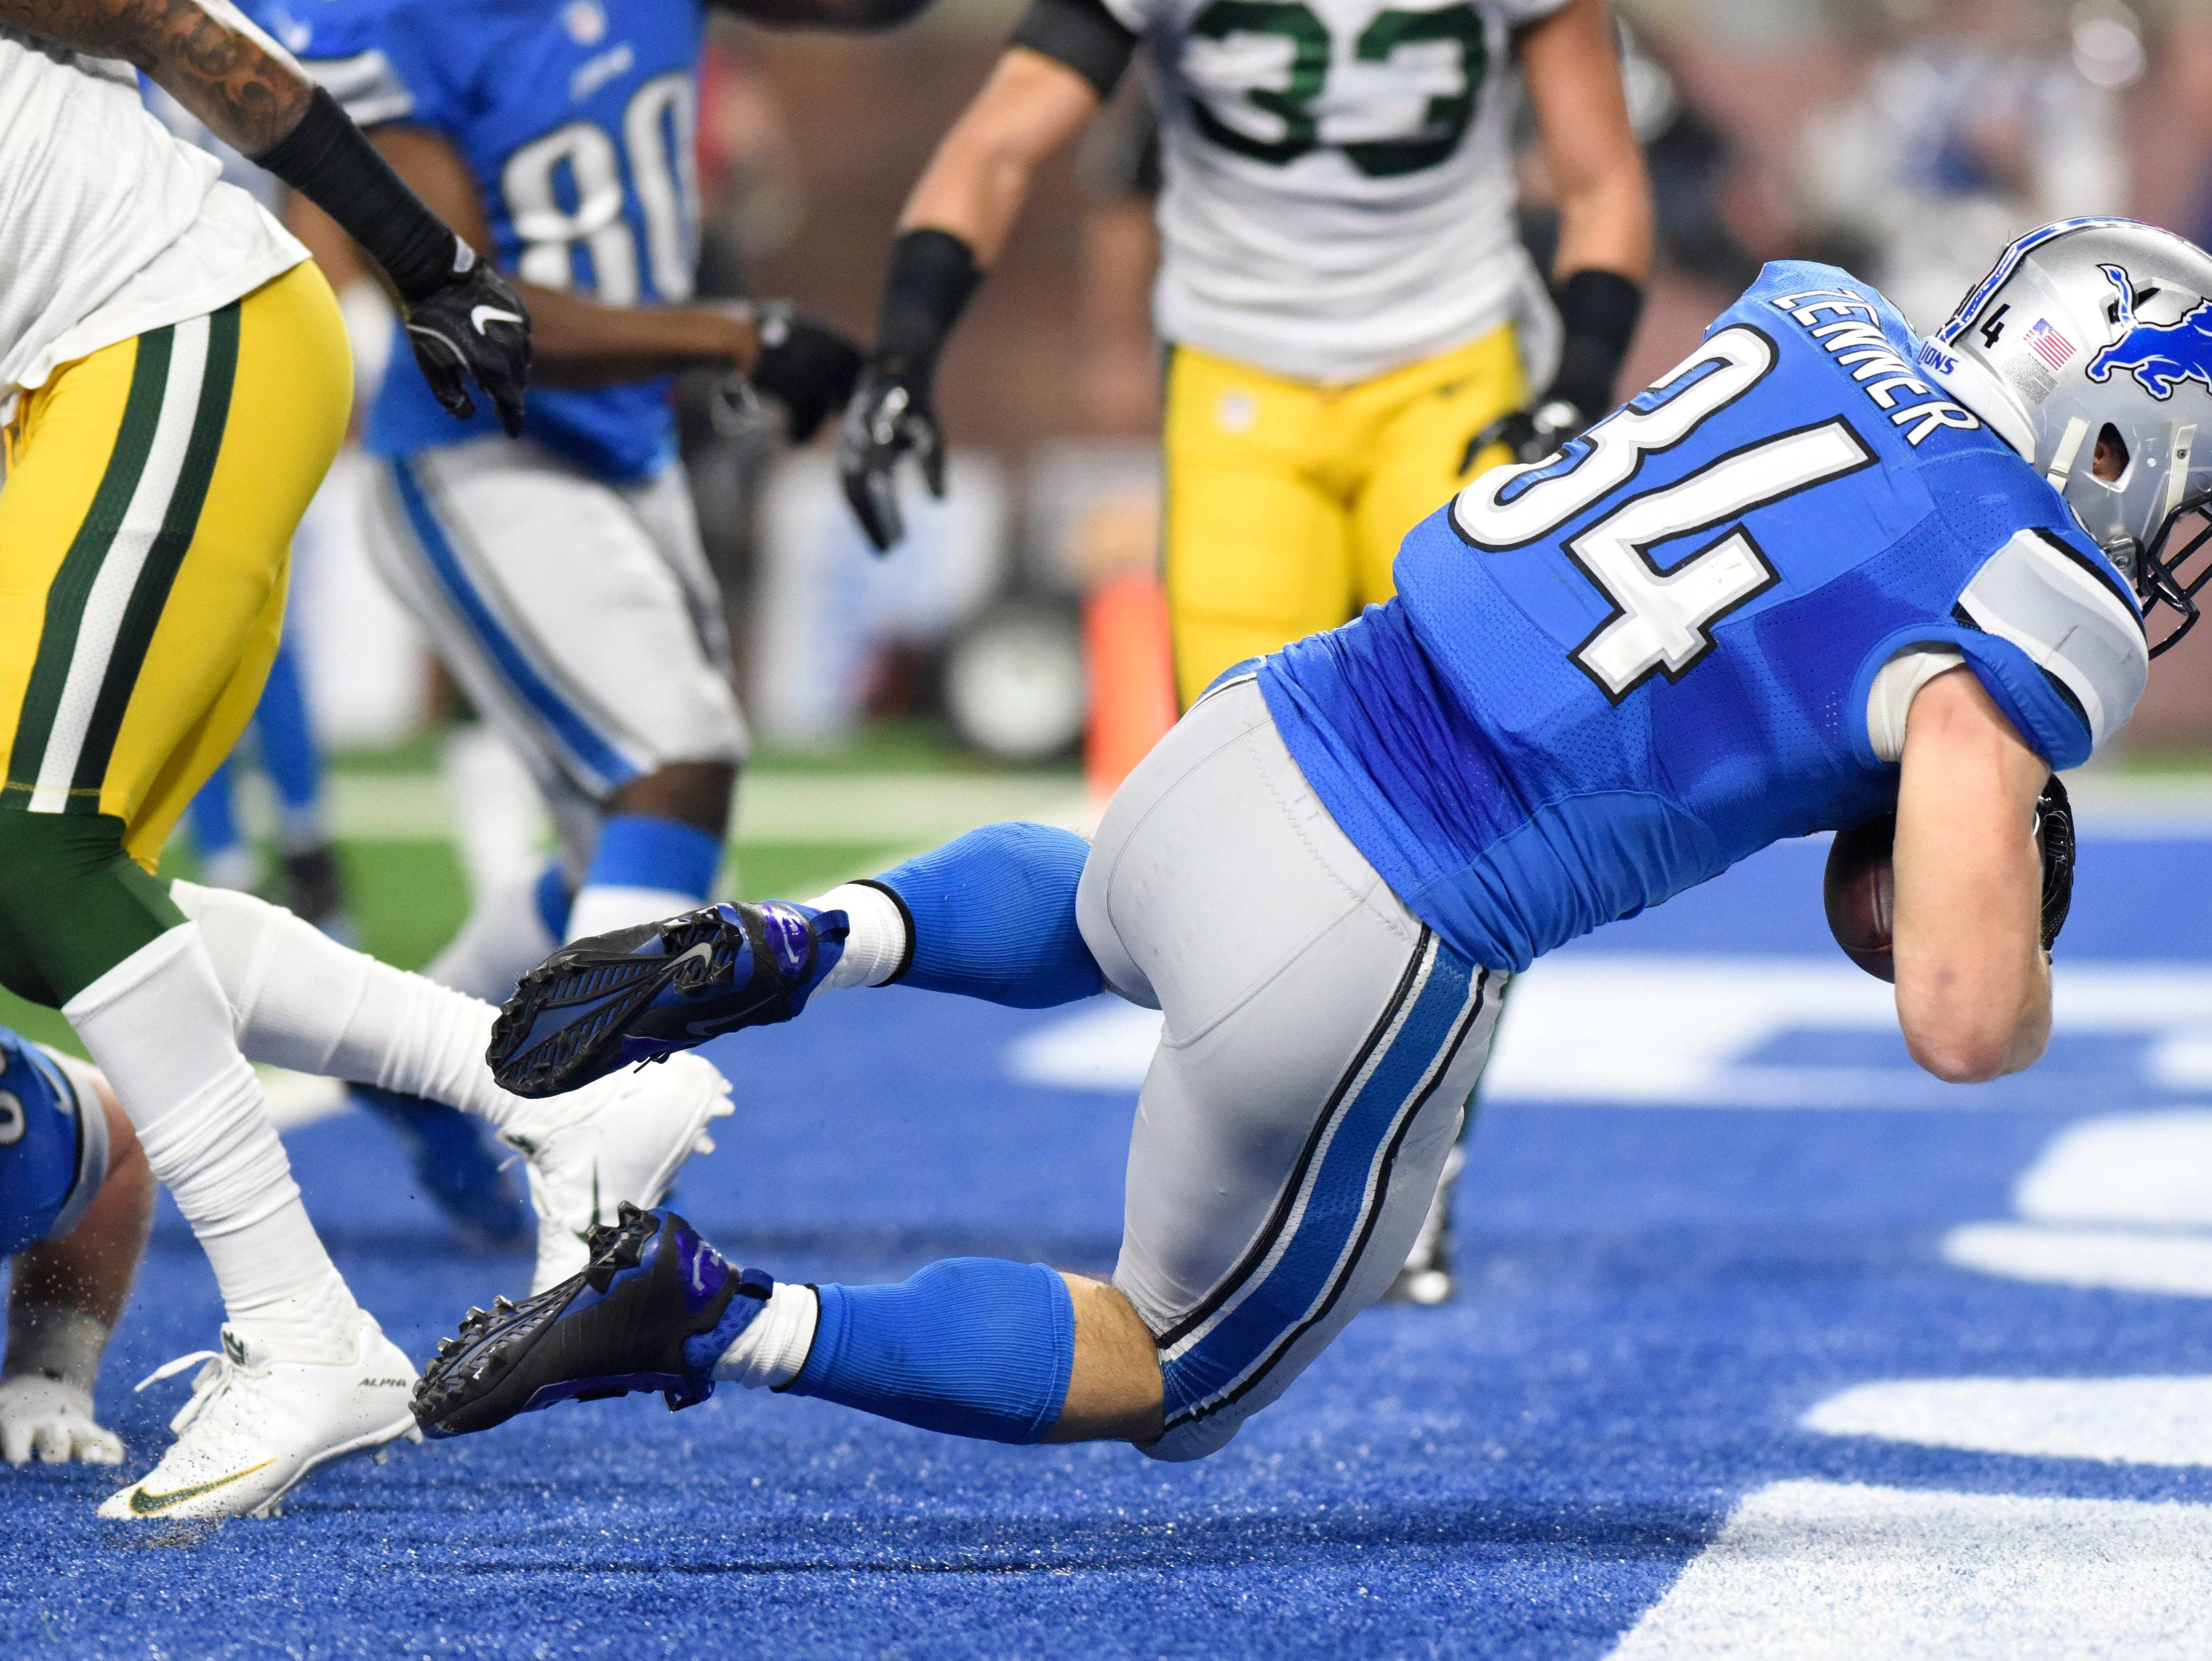 Detroit Lions fullback Zach Zenner falls into the end zone for a touchdown during the first half of an NFL football game against the Green Bay Packers, Sunday, Jan. 1, 2017, in Detroit. (AP Photo/Jose Juarez)